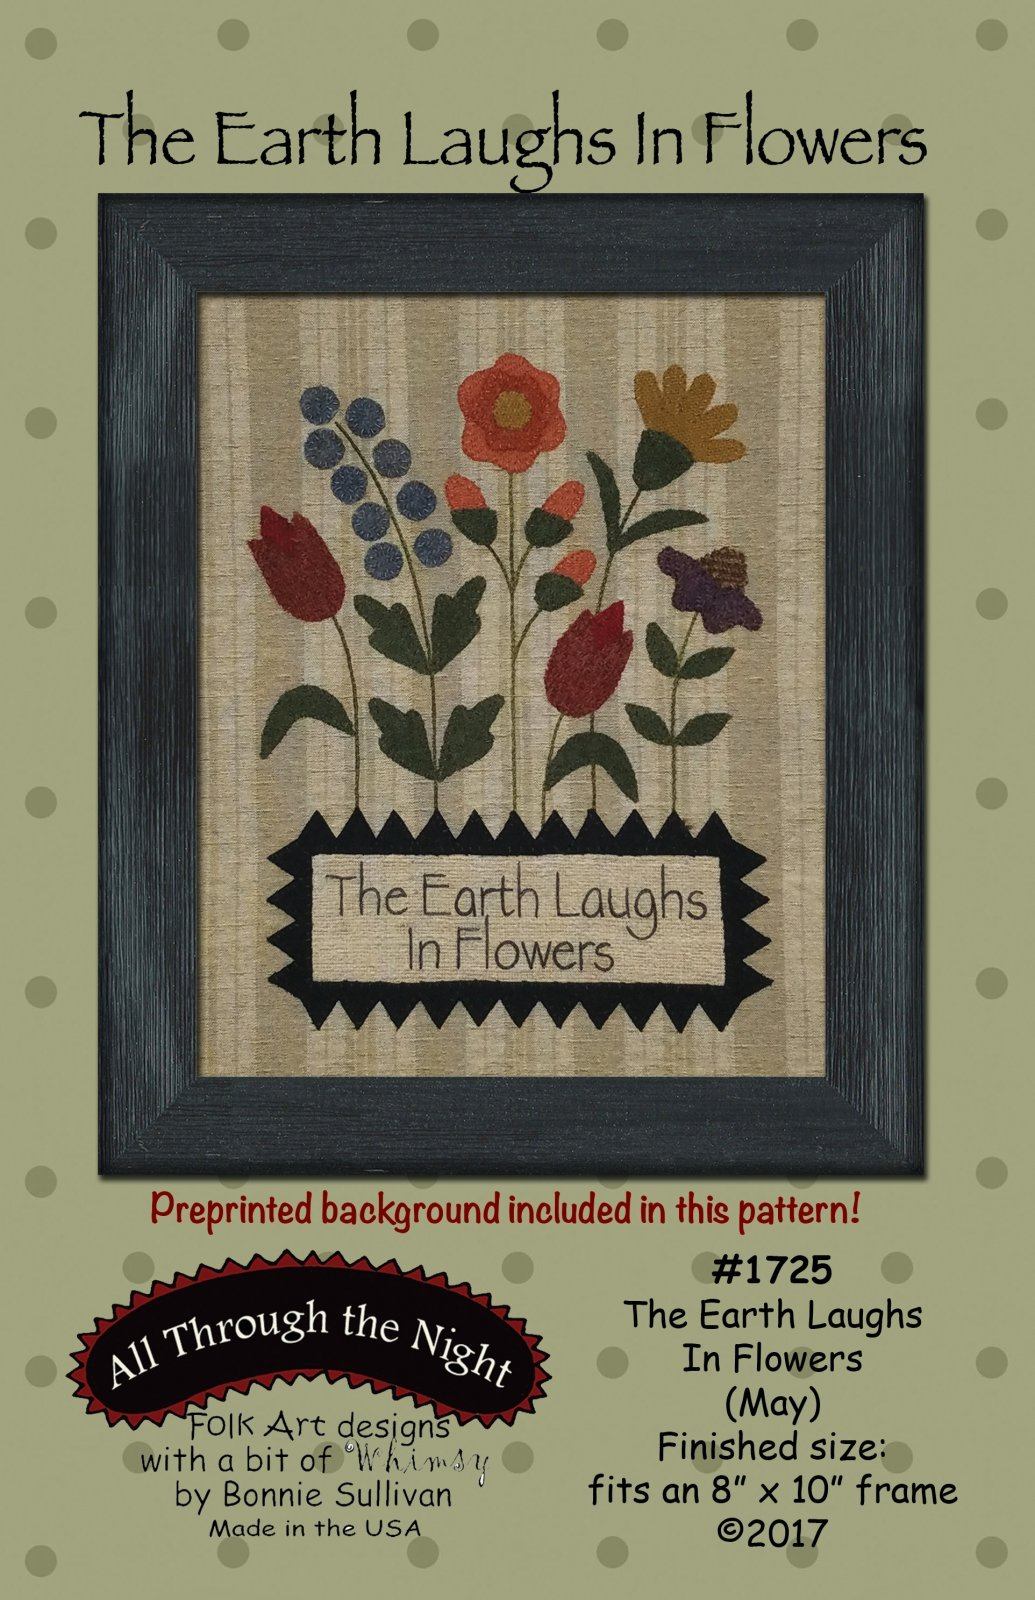 The Earth Laughs In Flowers (May) Pattern and Wool